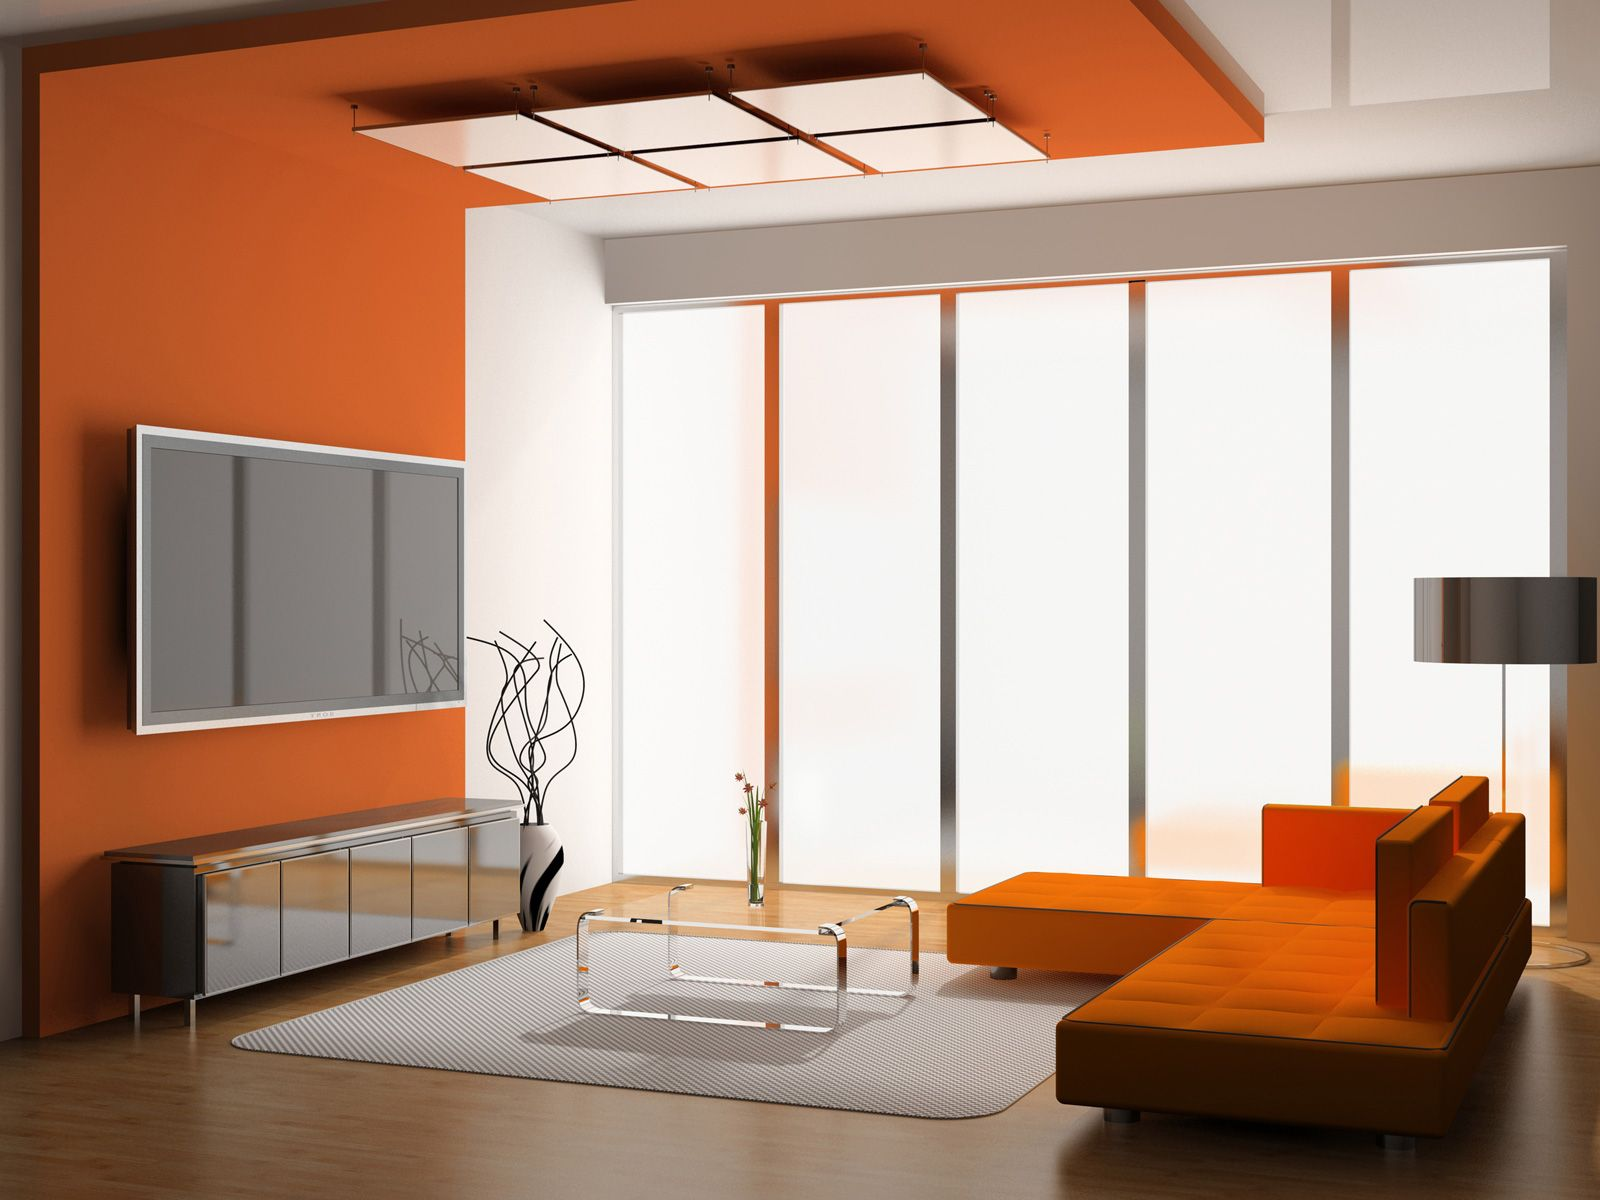 Modern bedroom paint color - Orange And White Scheme Color Ideas For Living Room Decorating With Warm Orange Modular Fabric L